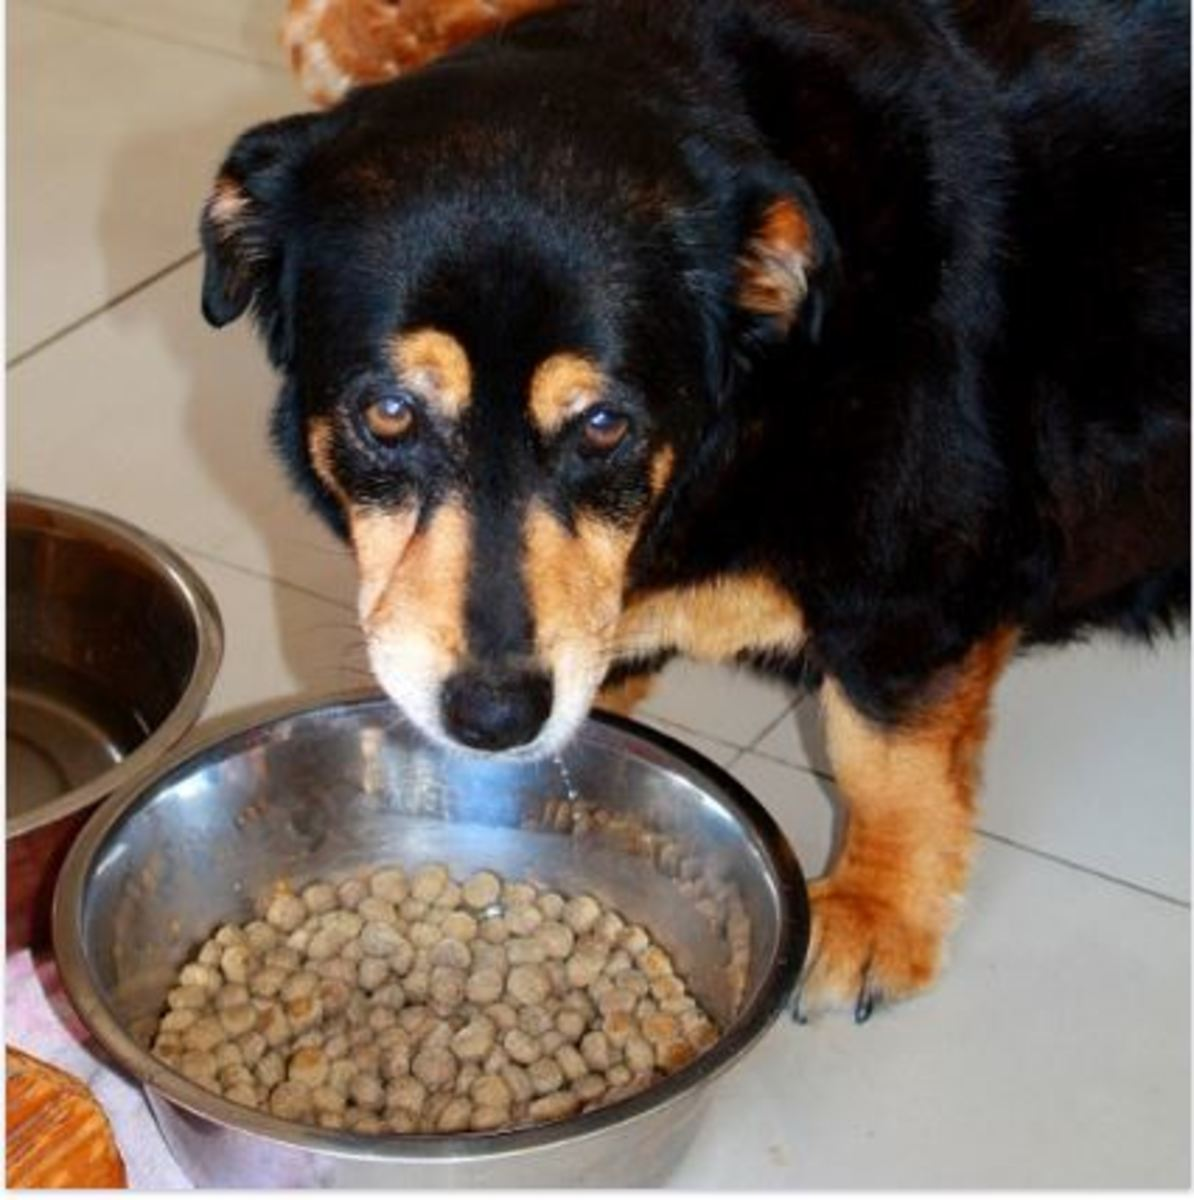 Dog with stomach cancer not eating